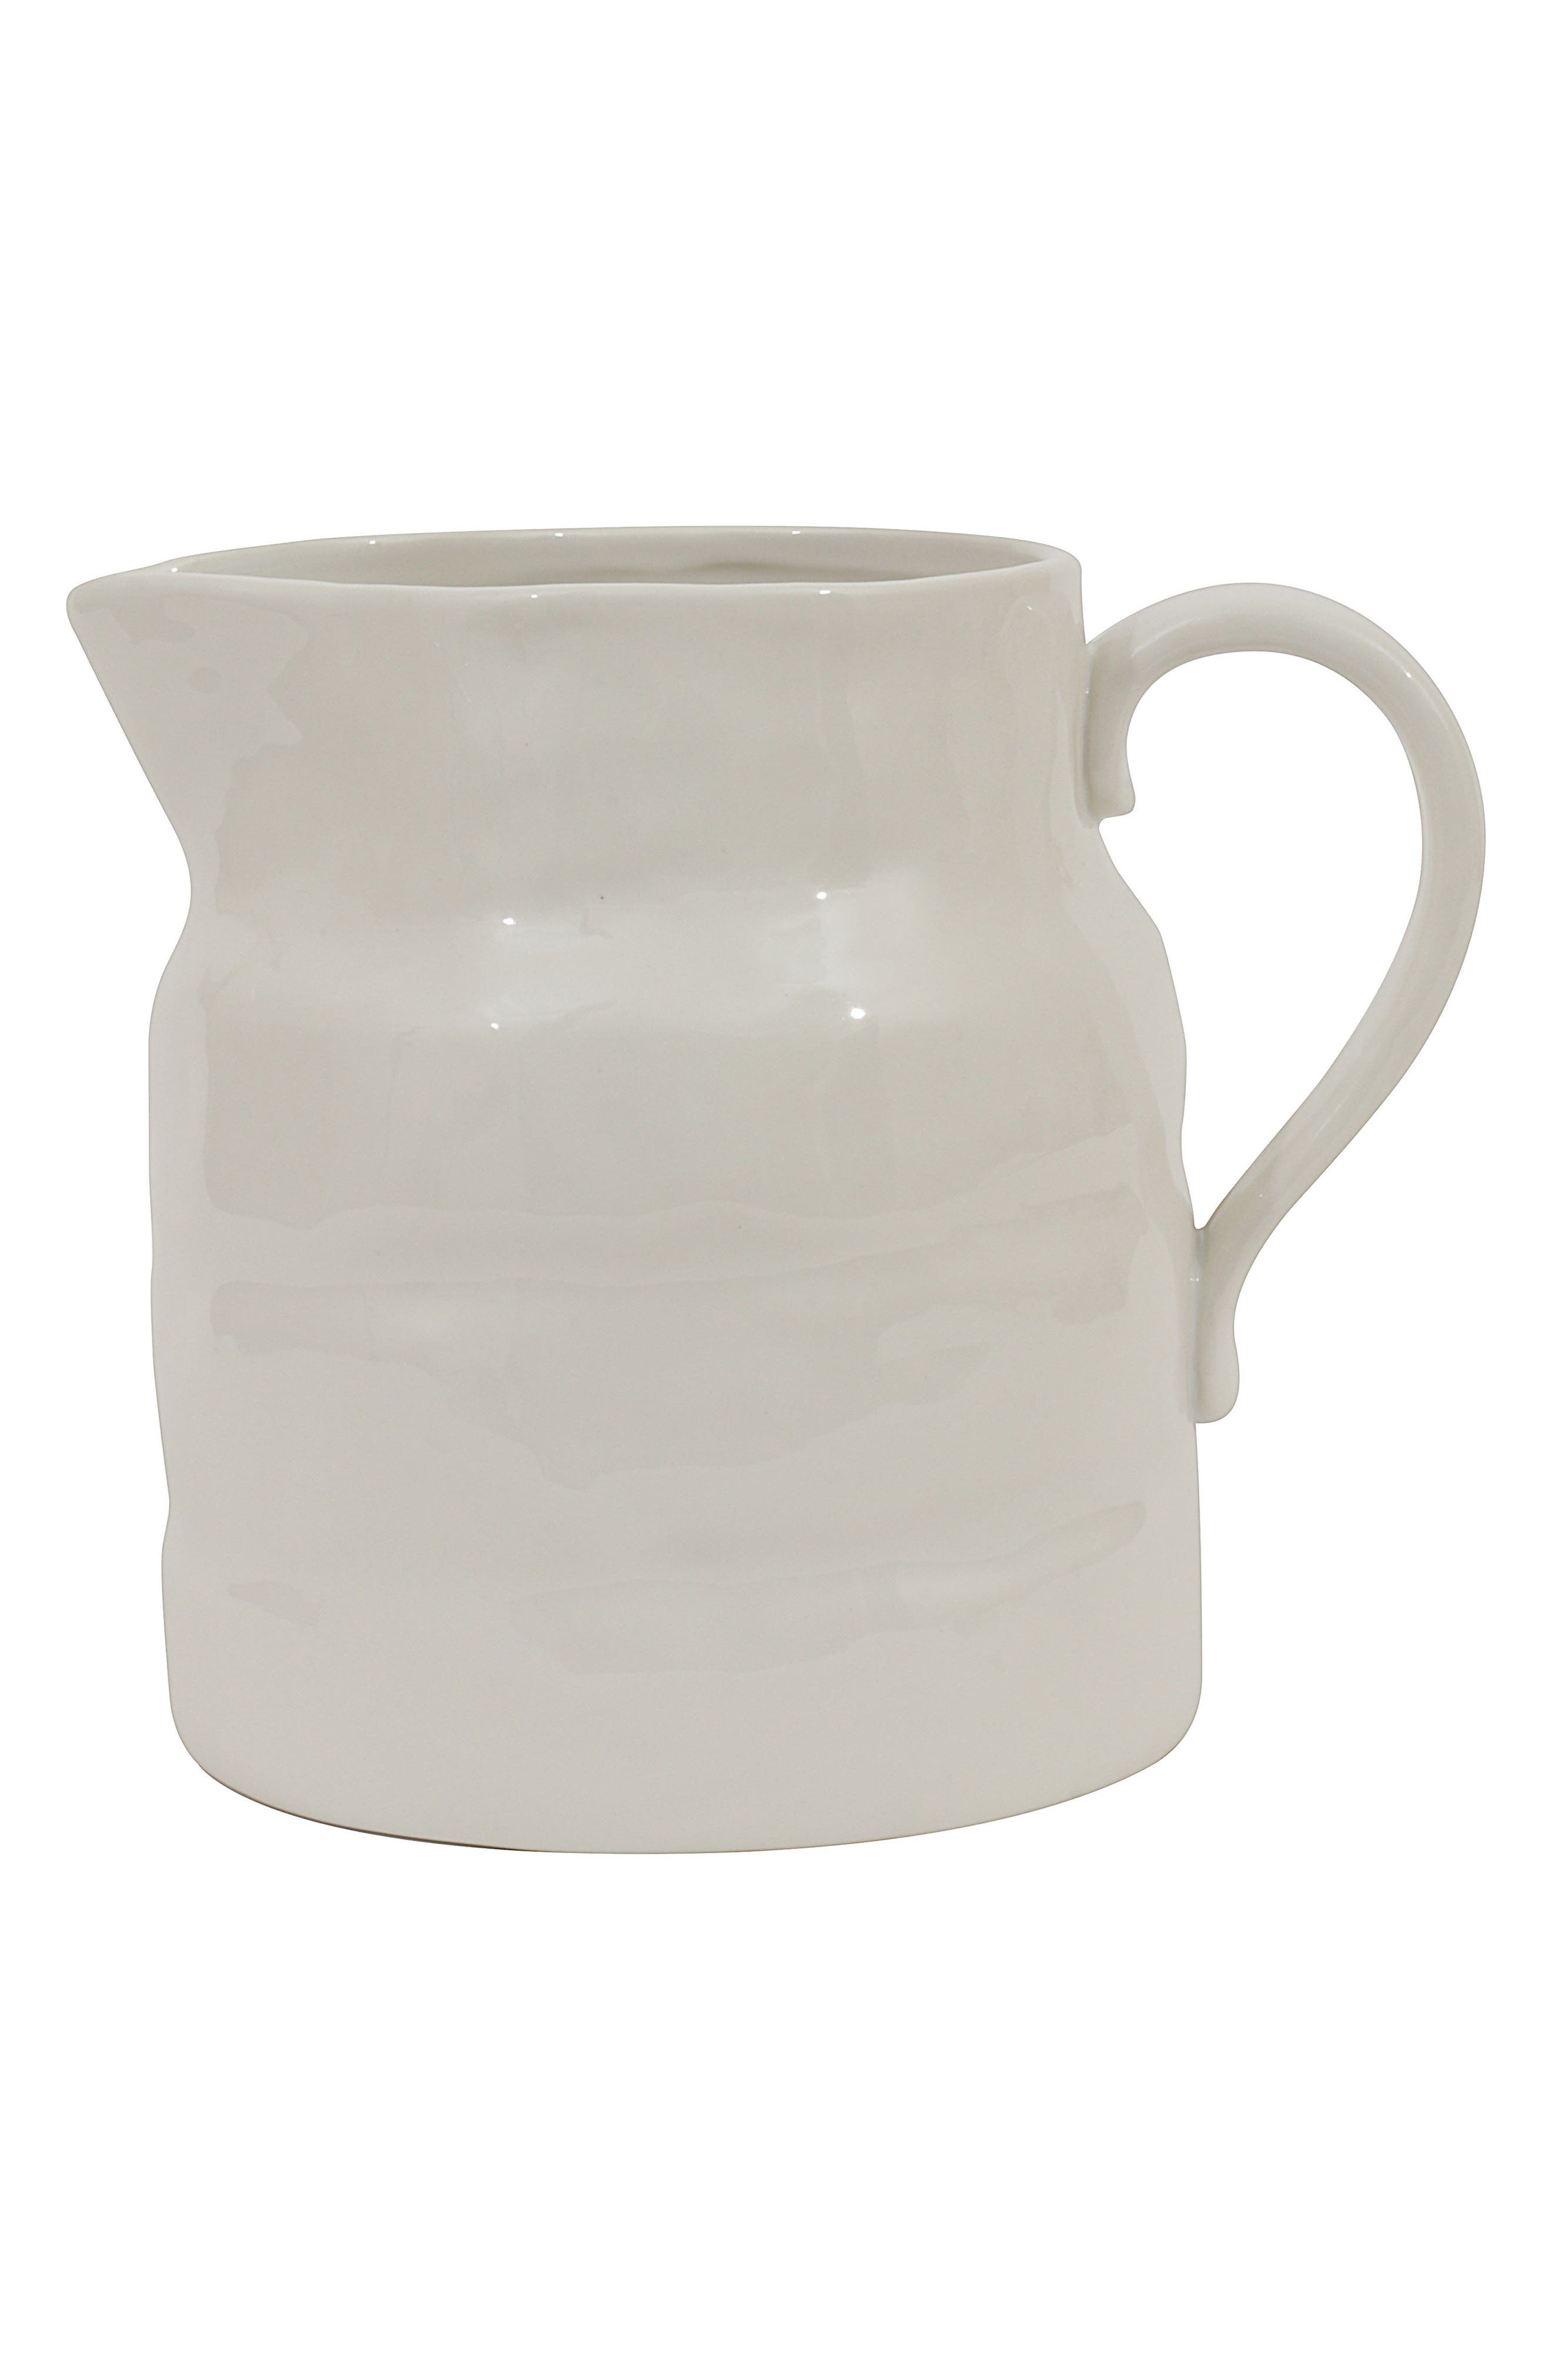 Large Ceramic Pitcher,                             Main thumbnail 1, color,                             100